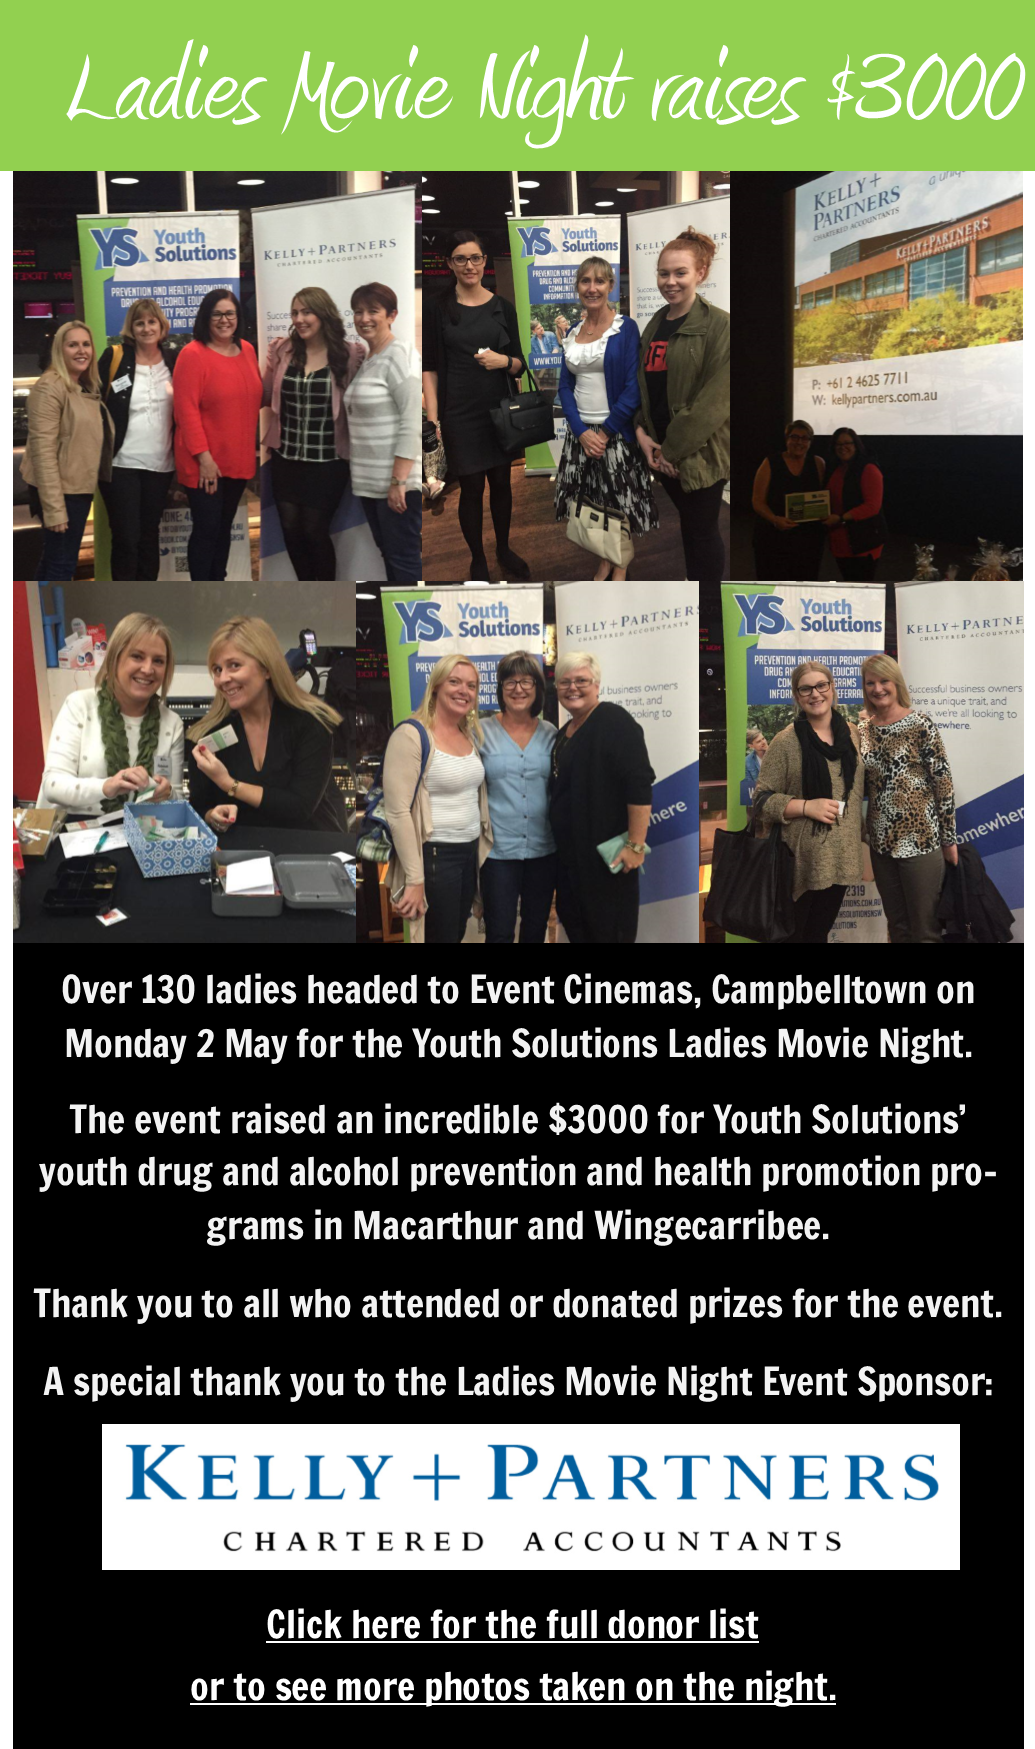 Ladies Movie Night Raises $3000 for Youth Solutions.